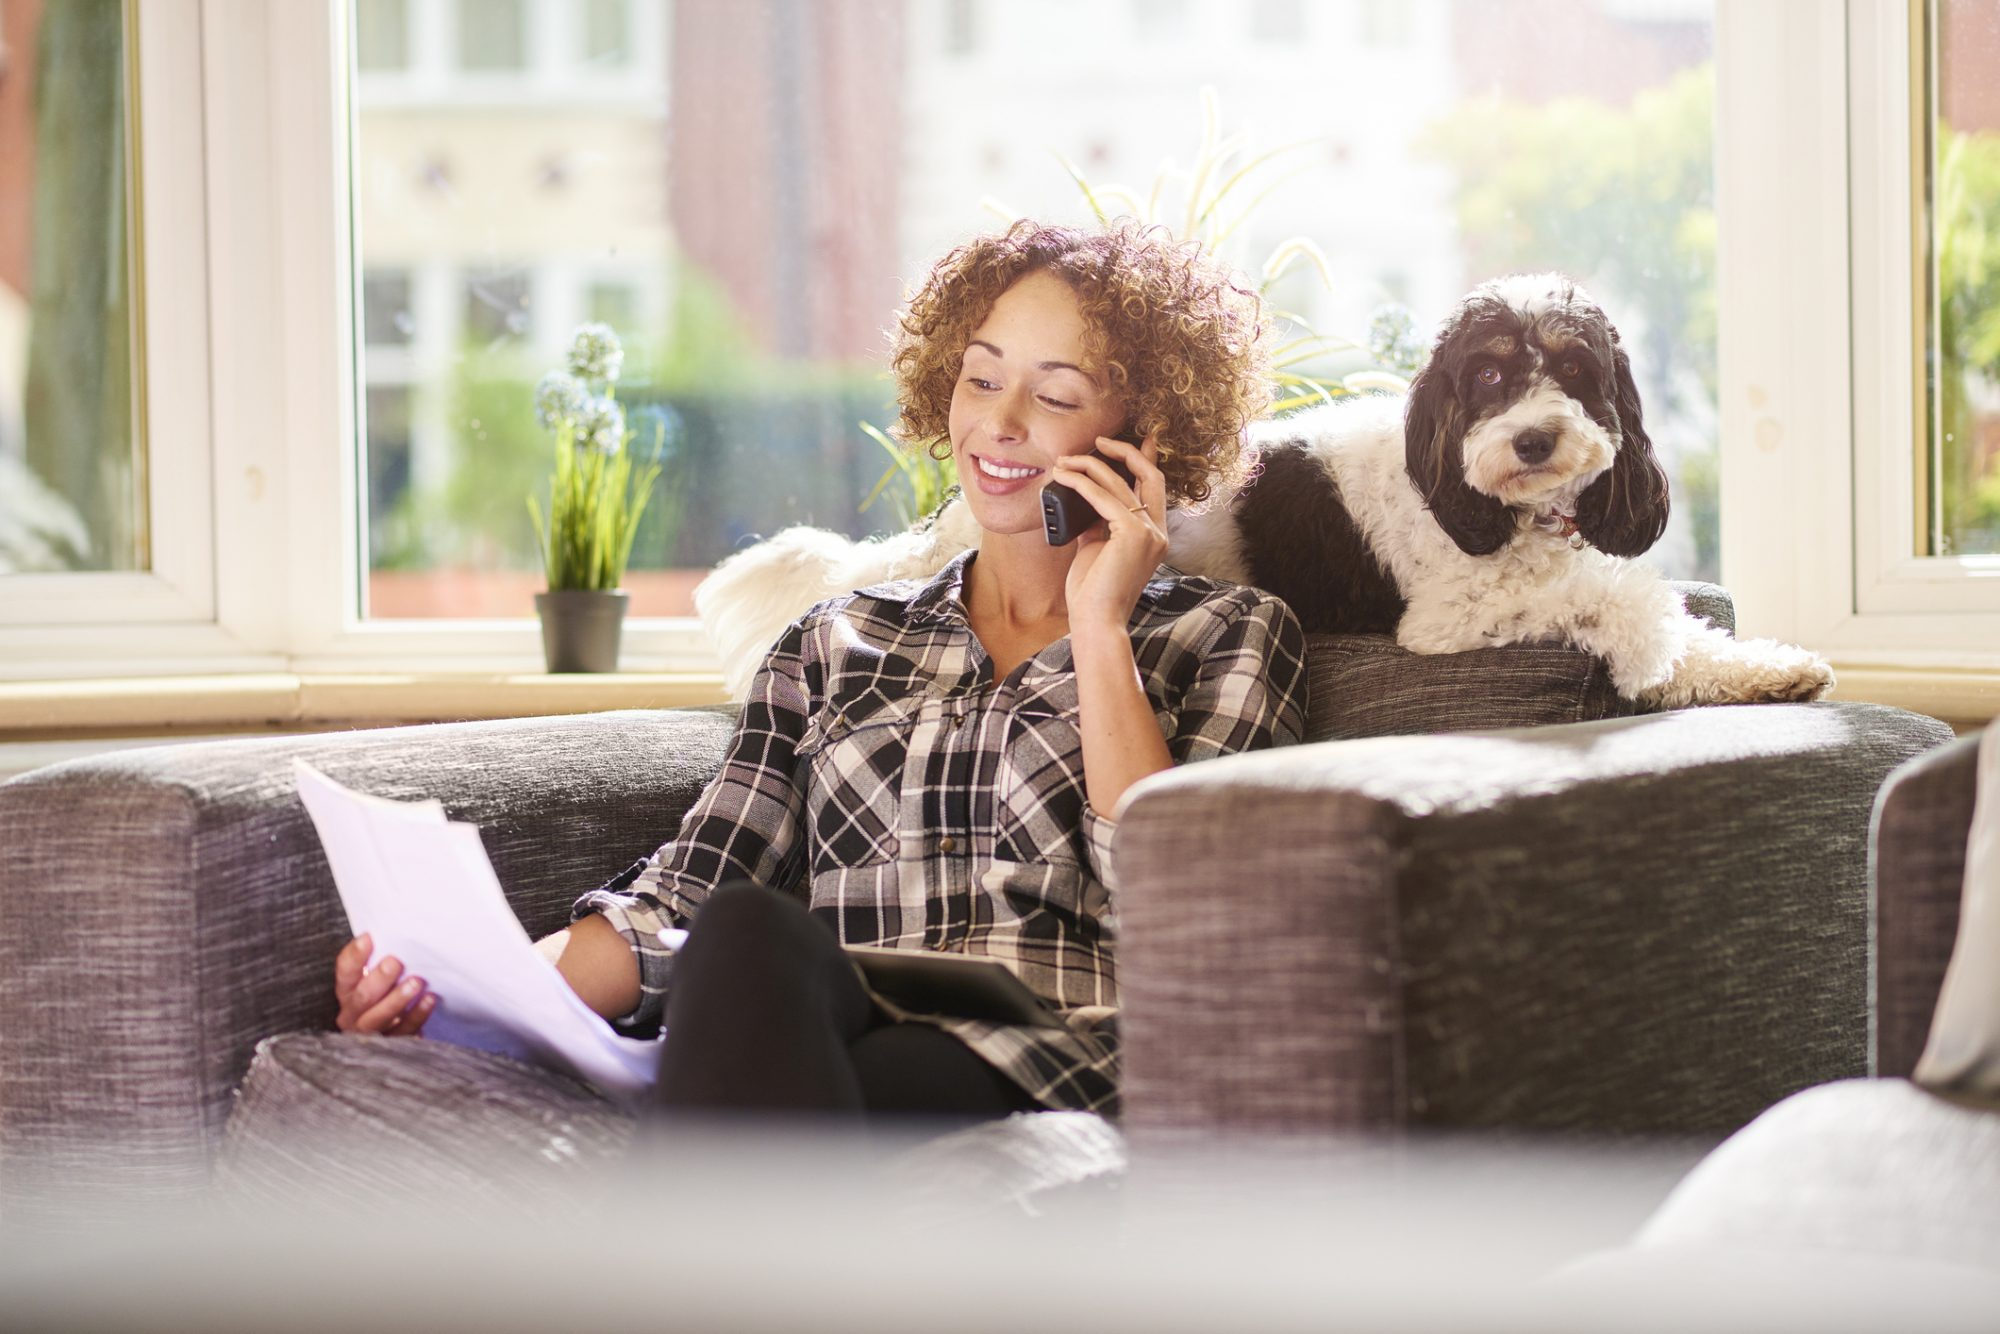 Woman sitting on the couch on the phone holding paperwork out with her dog sitting behind her